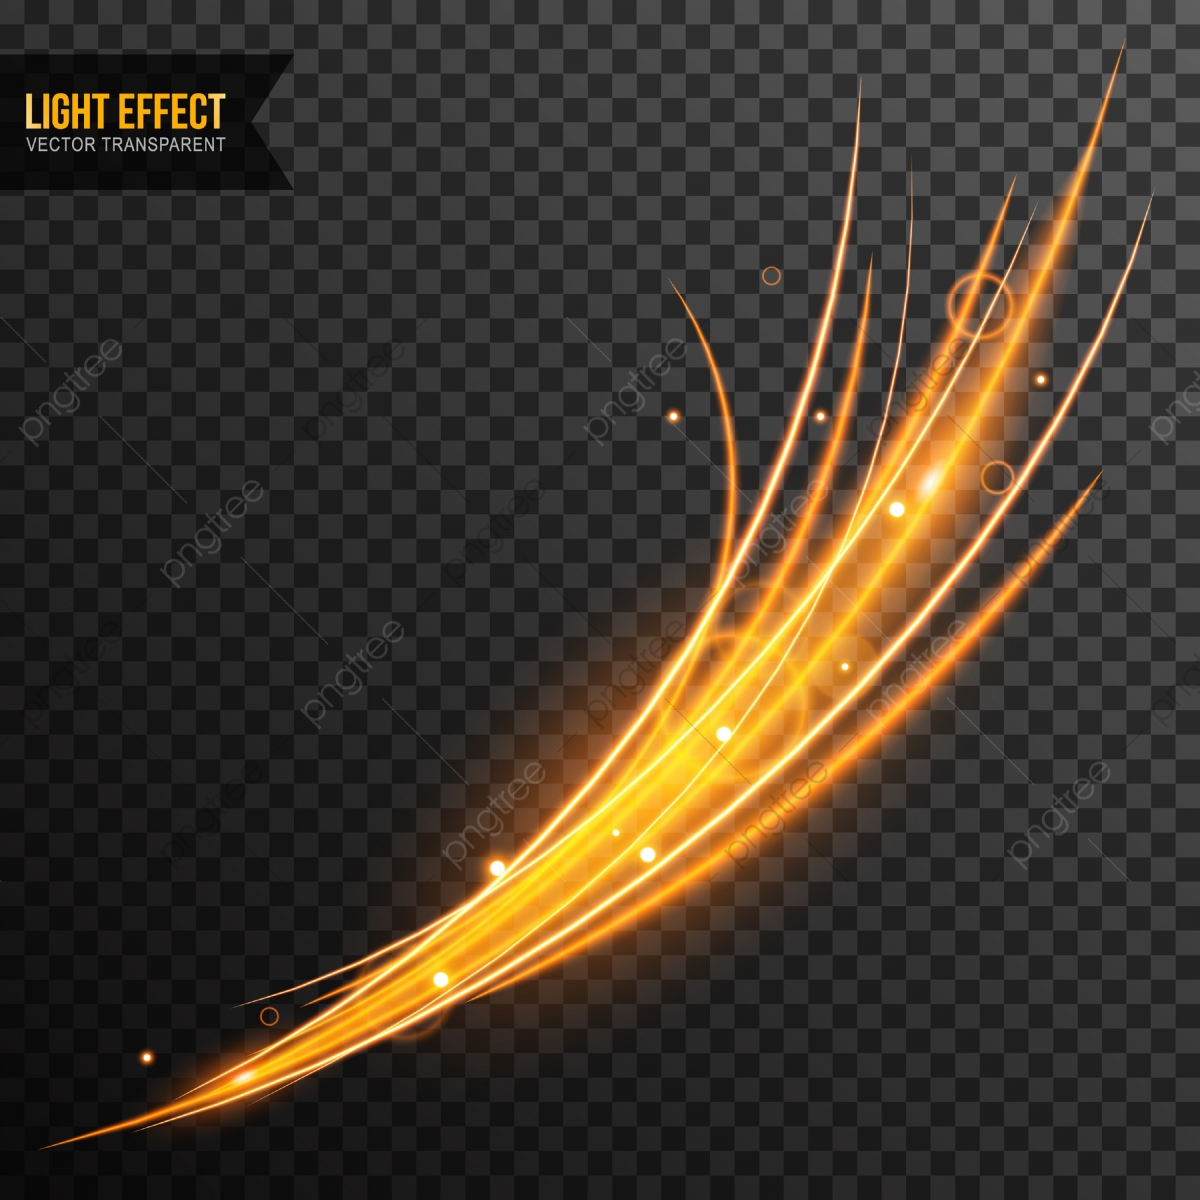 Light Effect Vector Transparent With Line Swirl And Golden.